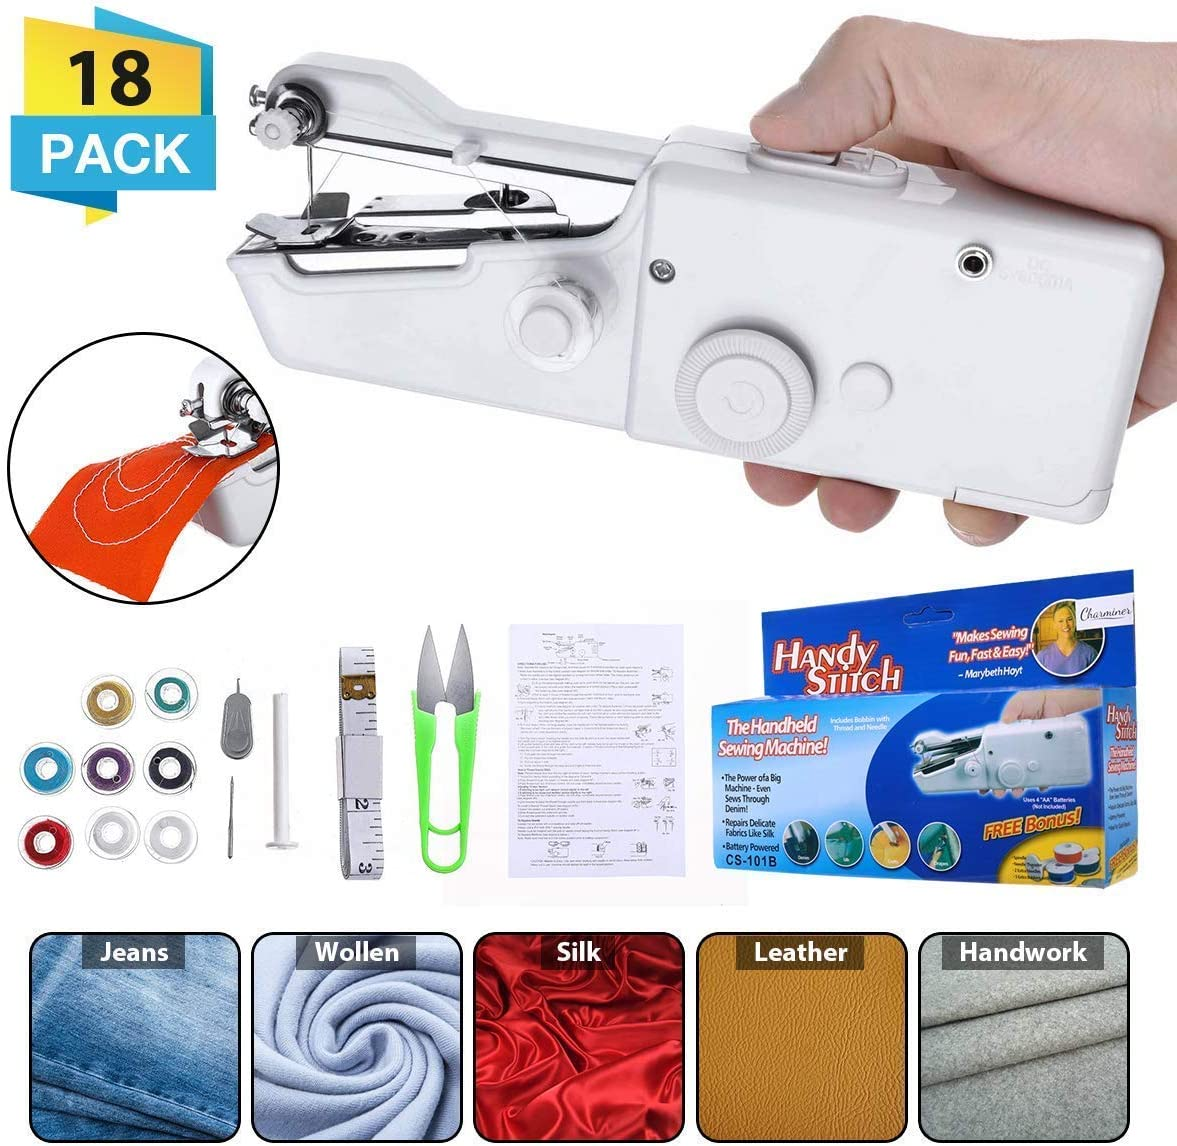 CHARMINER Hand Sewing Machine, Mini Hand-held Portable Sewing Machine, Quick Repairing Suitable for Denim Curtains Leather DIY 18 PCS(White)